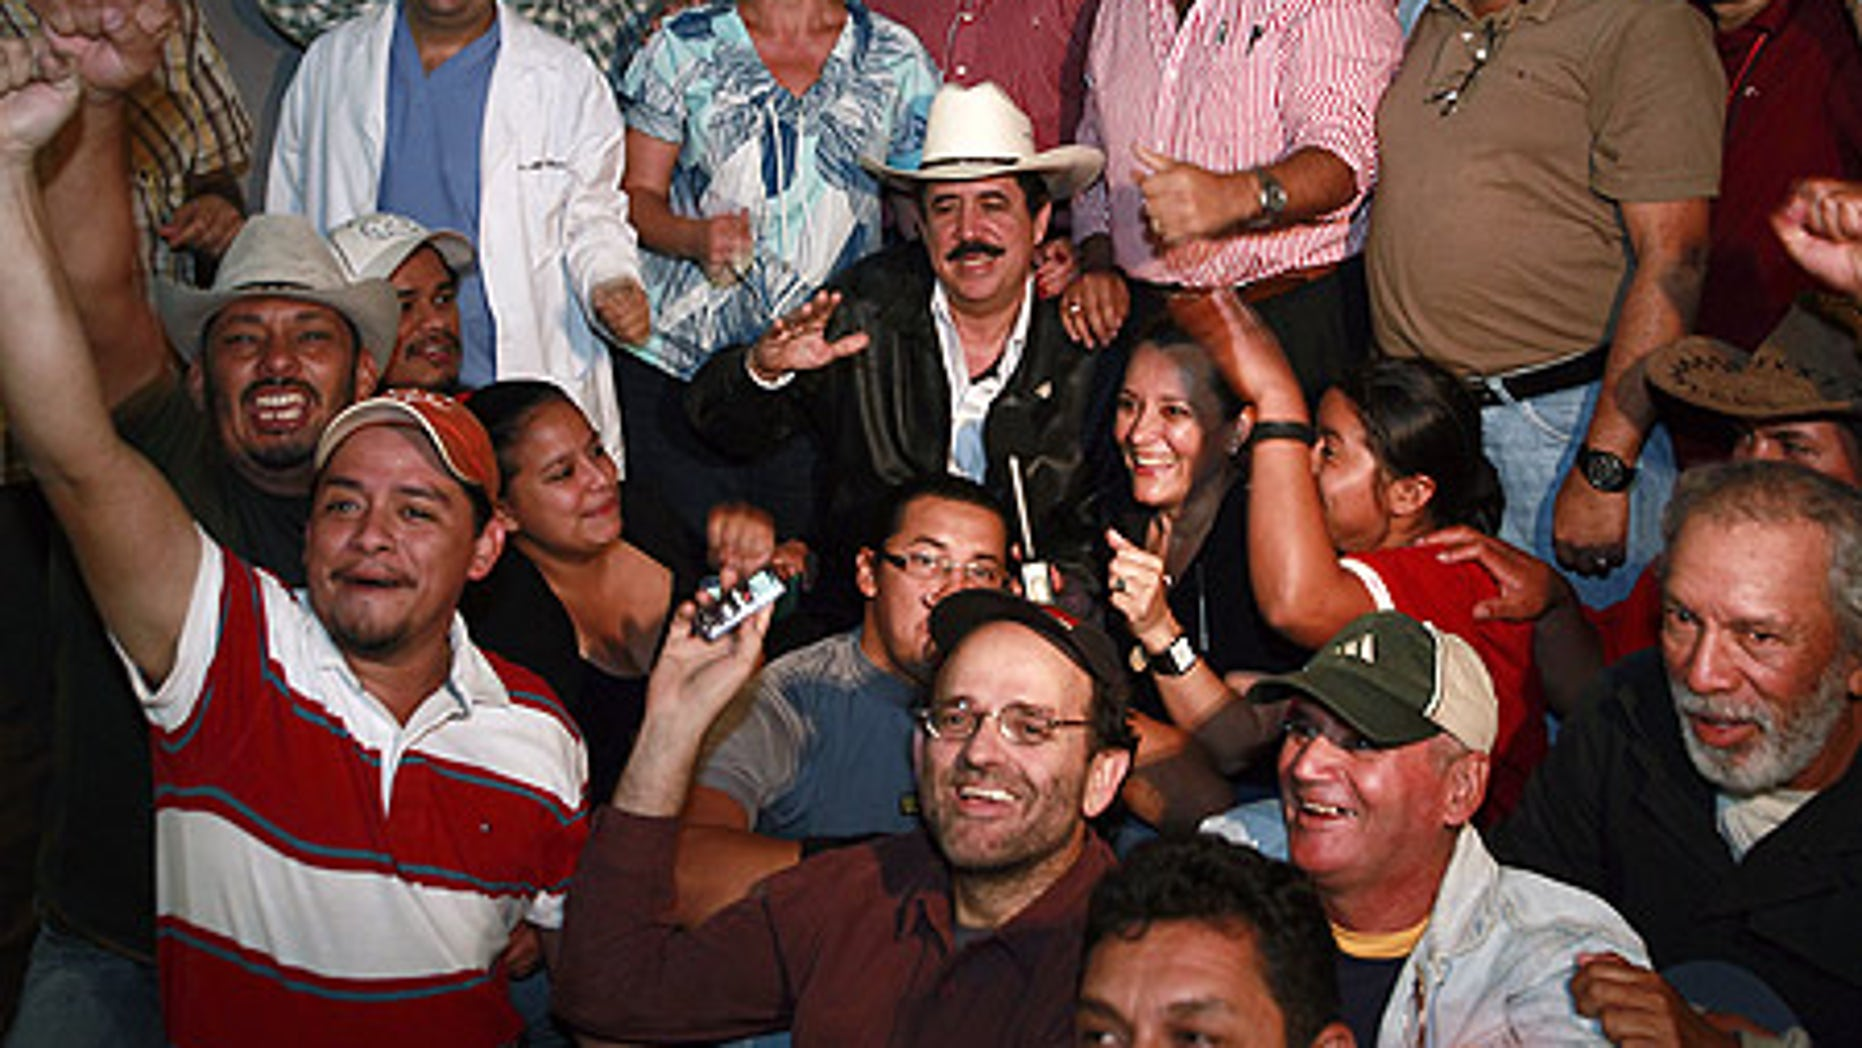 Oct. 30: Honduras' ousted President Manuel Zelaya surrounded by his supporters at the Brazilian embassy in Tegucigalpa.